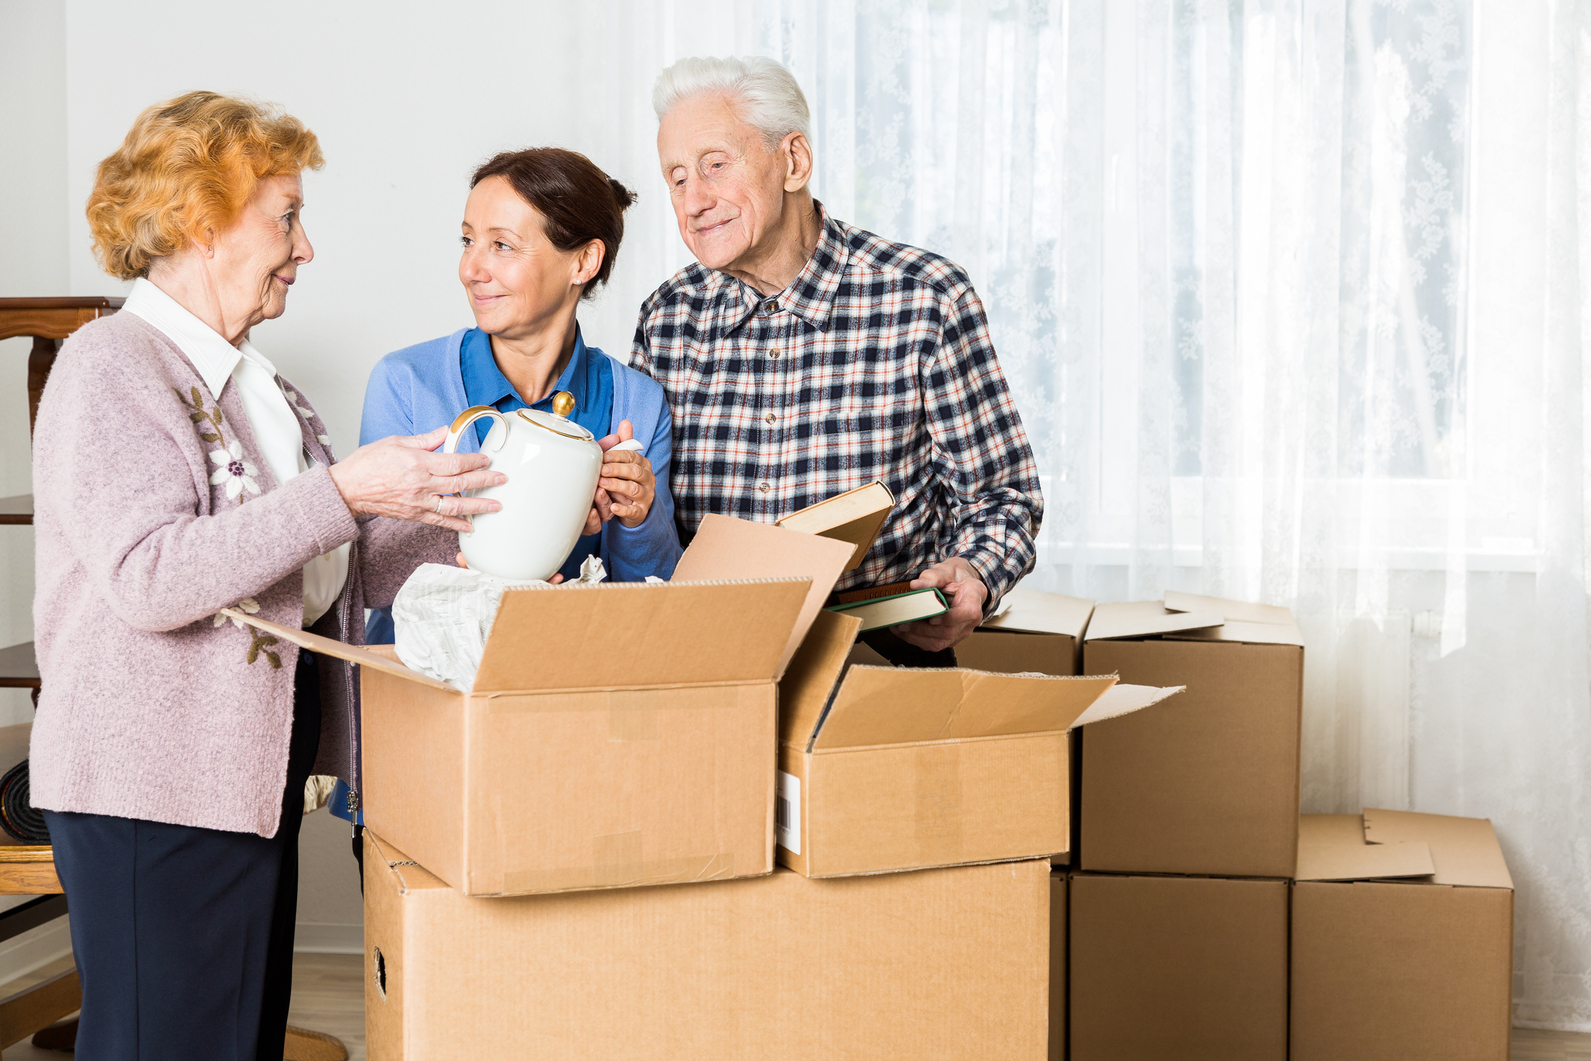 Three people looking at items as they downsize and move things into boxes